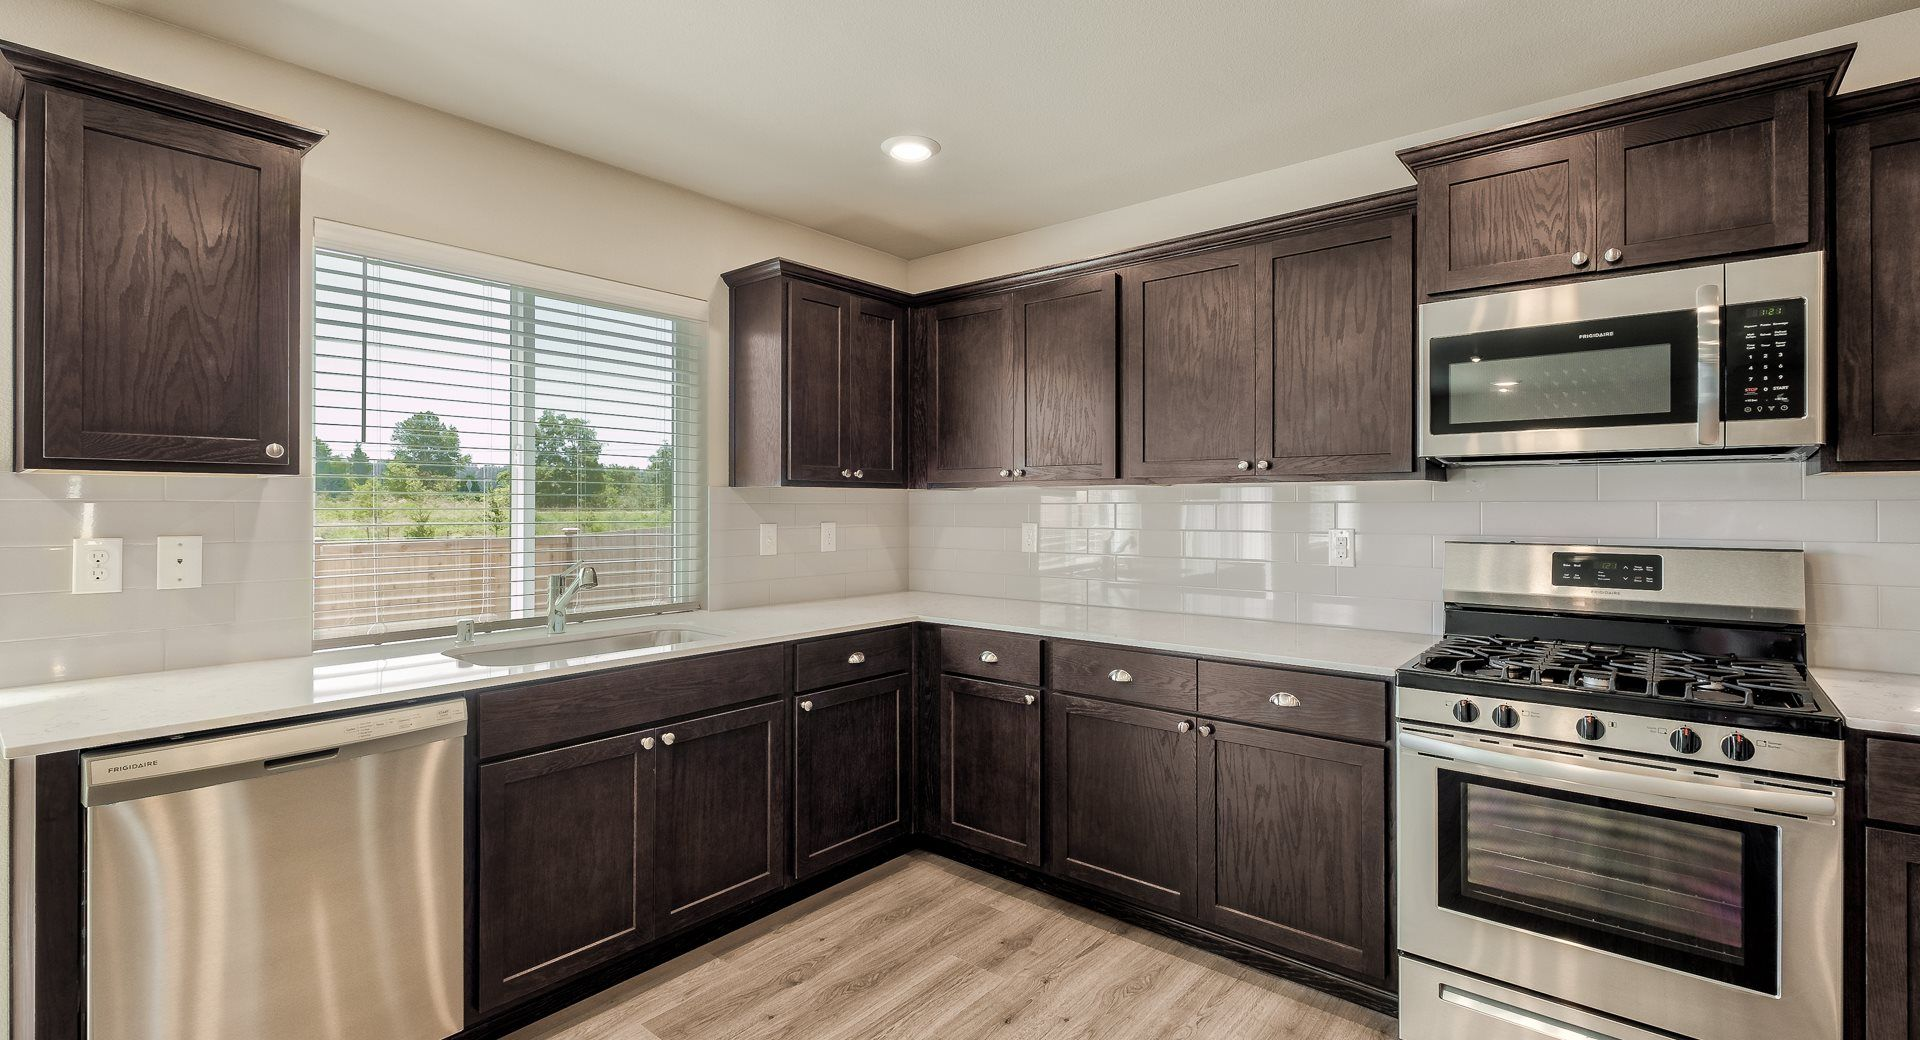 Kitchen featured in the Zinfandel By Lennar in Seattle-Bellevue, WA